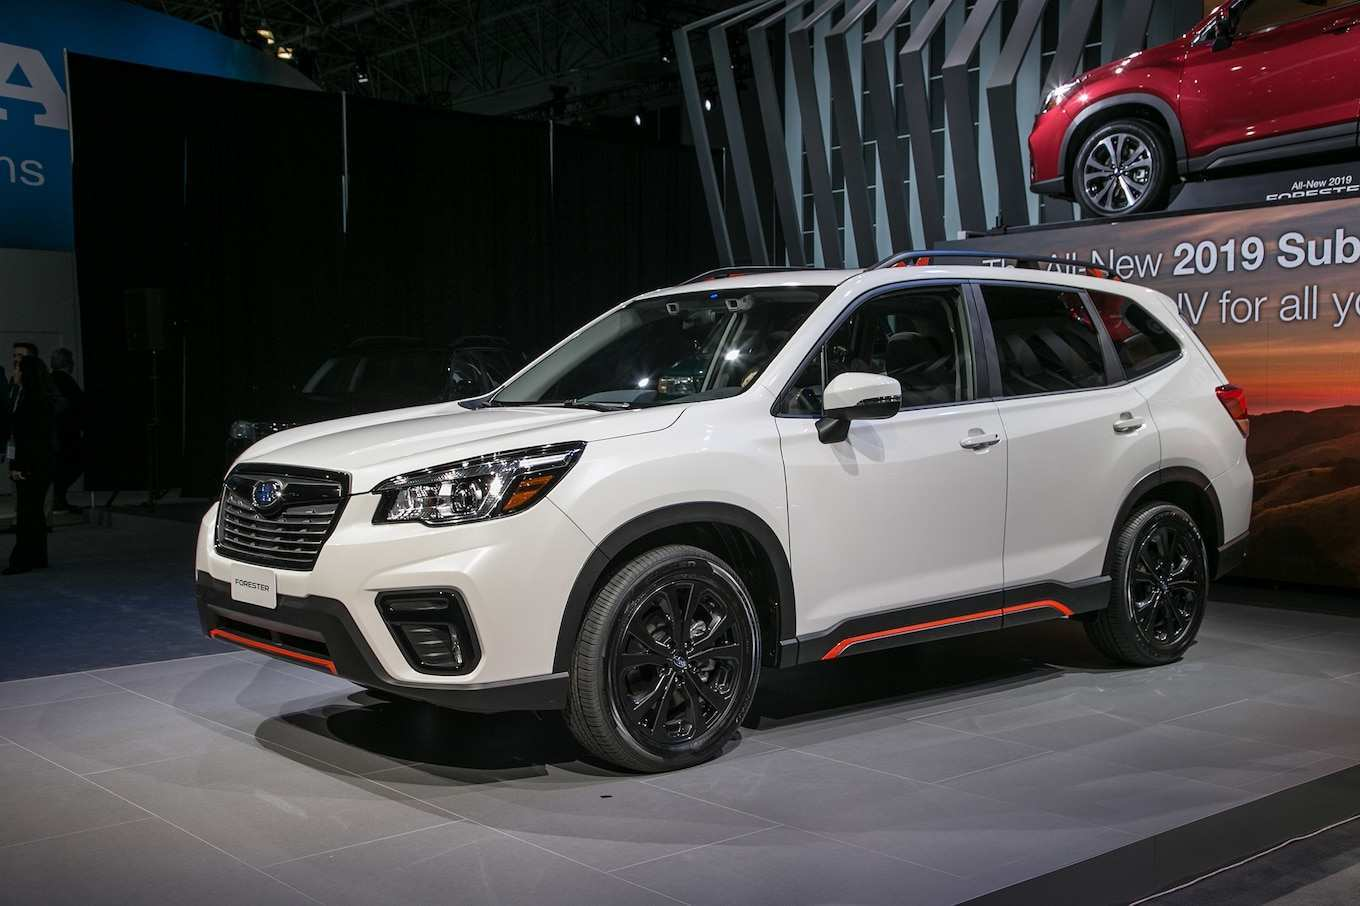 66 A 2019 Subaru Forester Mpg New Model And Performance